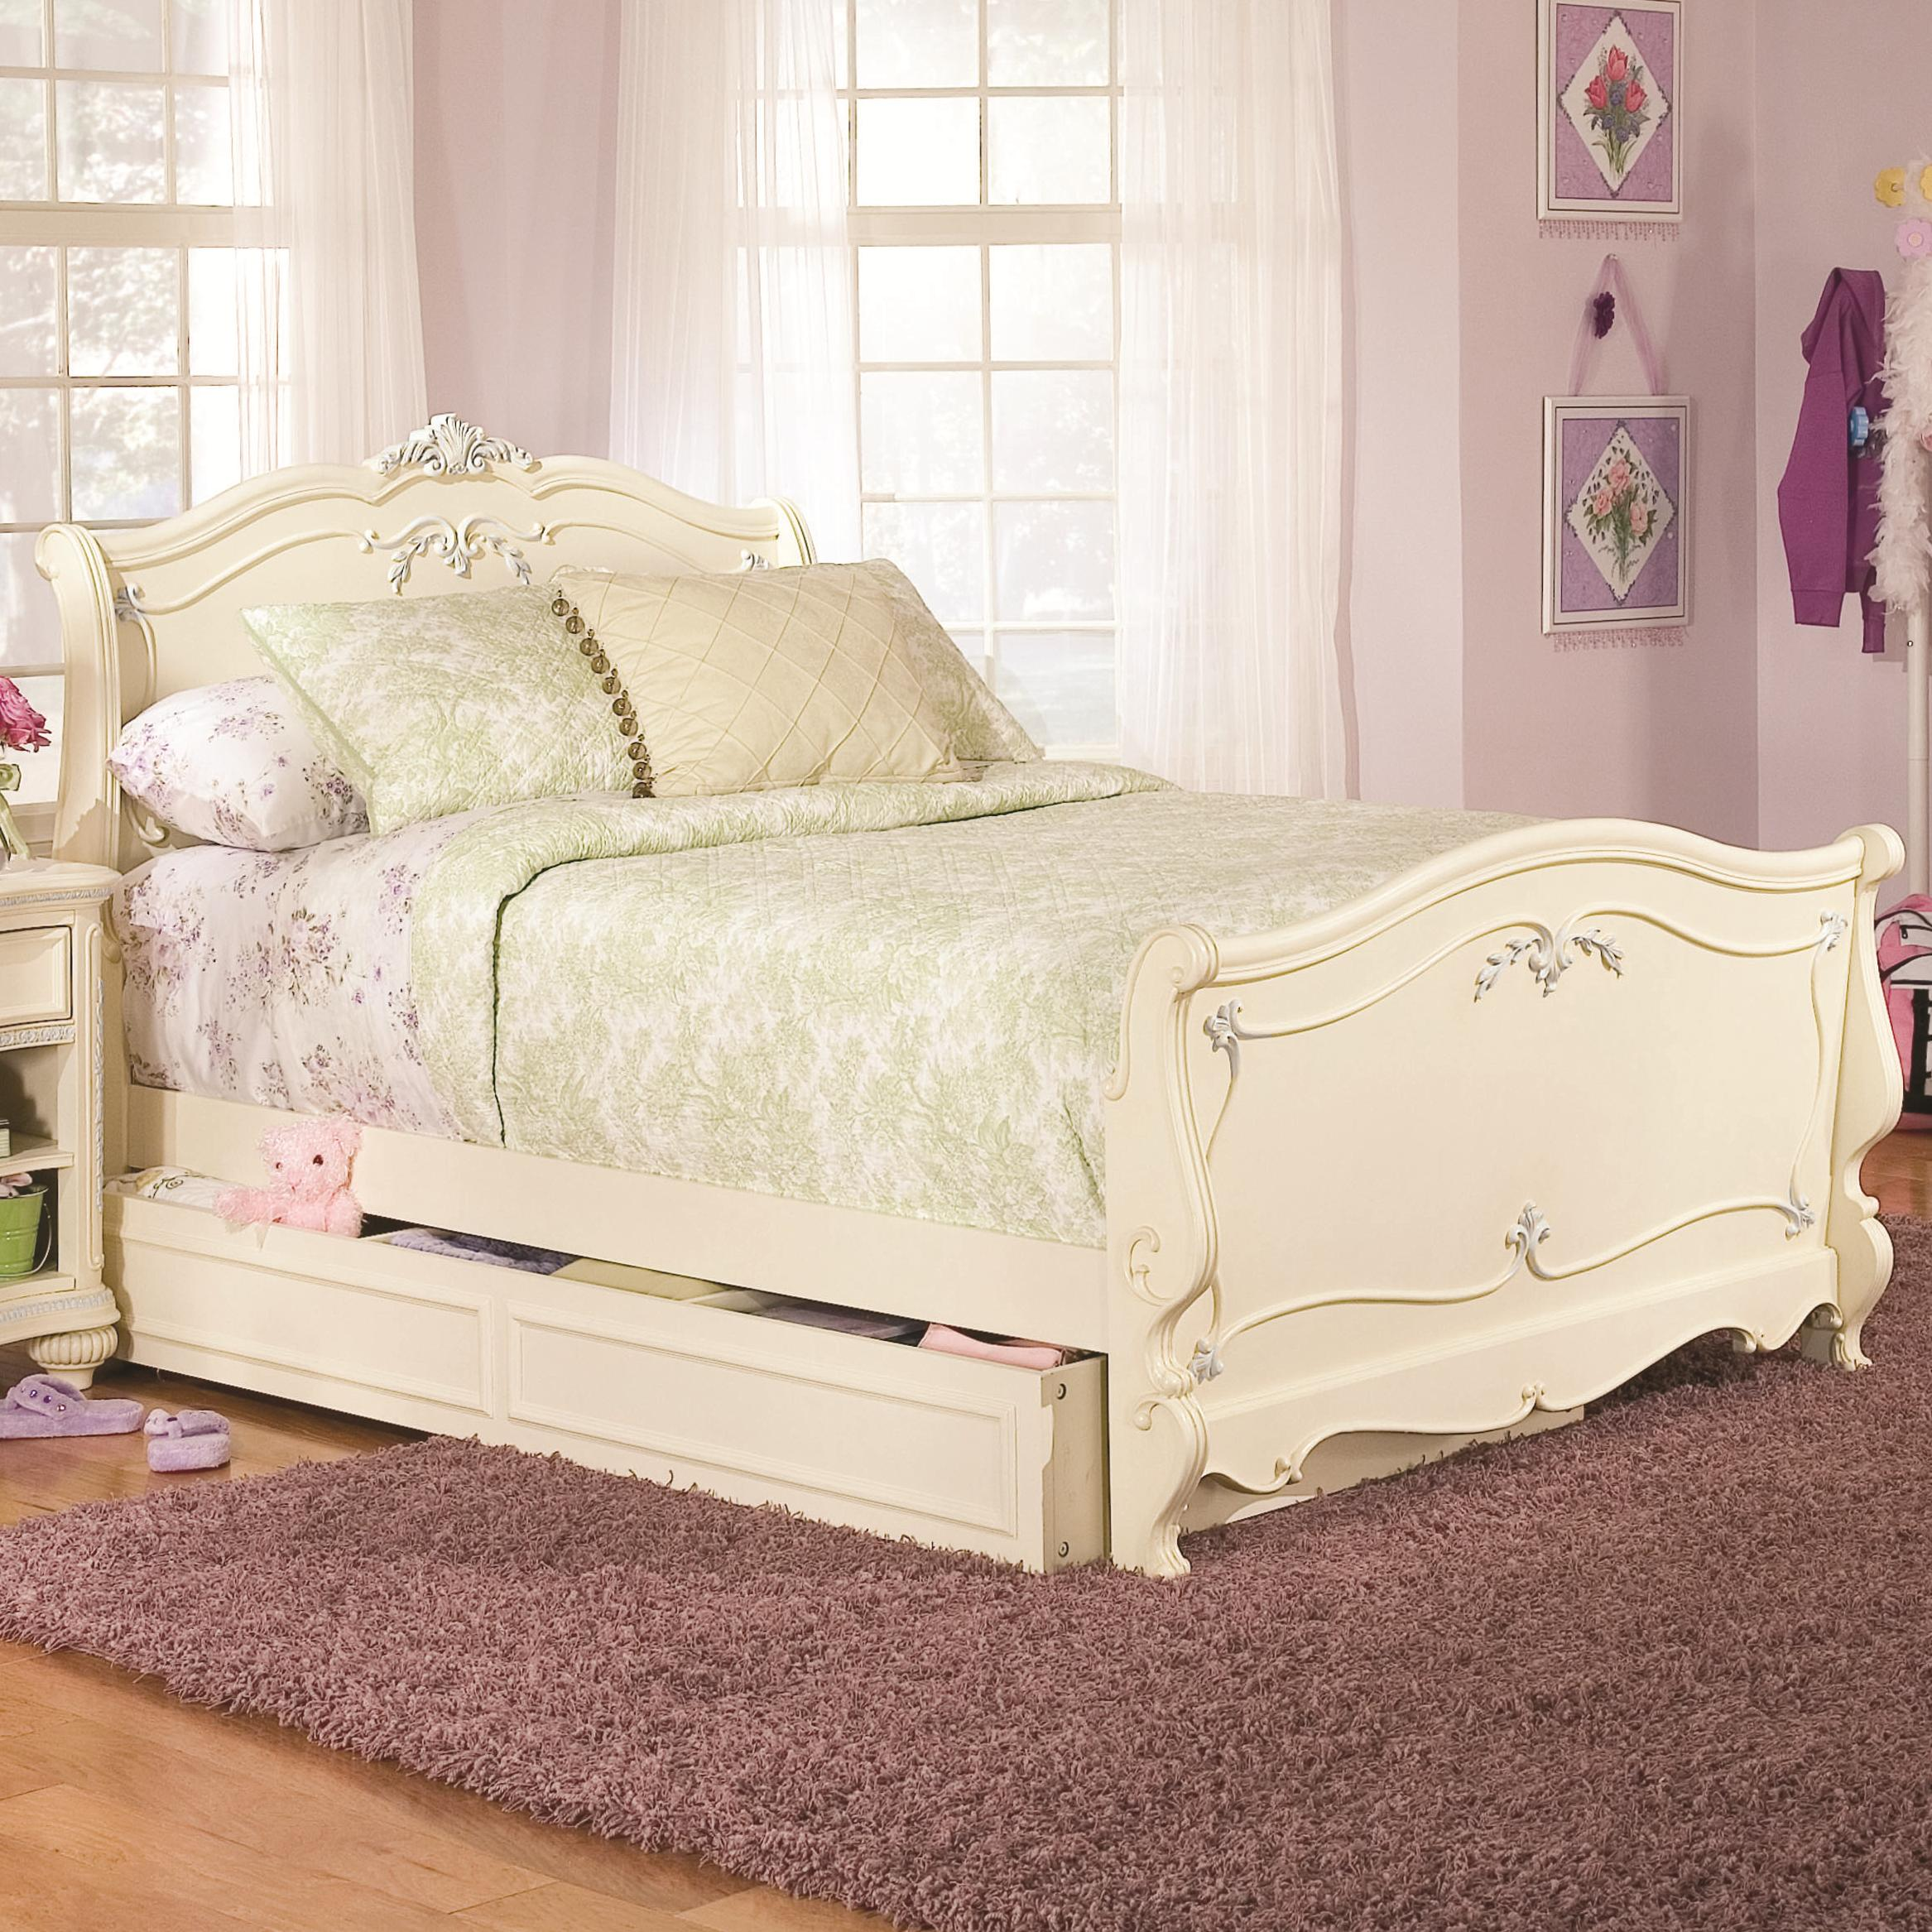 Bed Shown May Not Represent Size Indicated. Lea Industries Jessica  McClintock ...